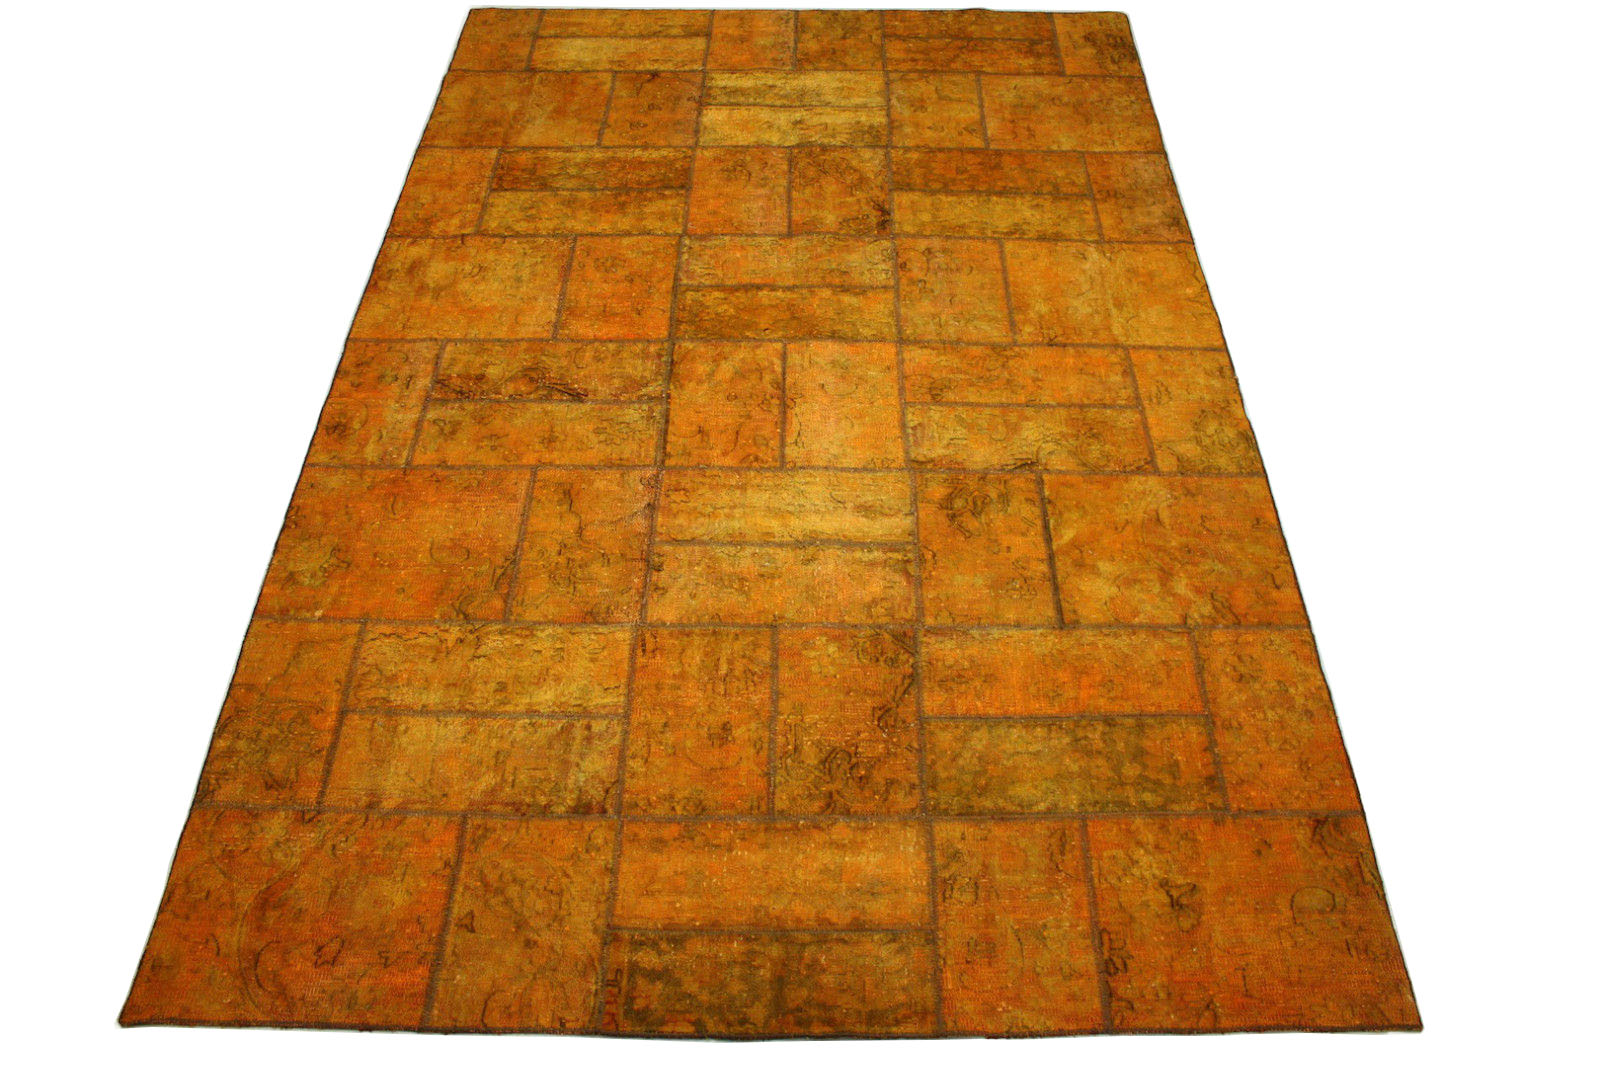 Patchwork Teppich Curry Gold in 300x200cm (10012970) bei